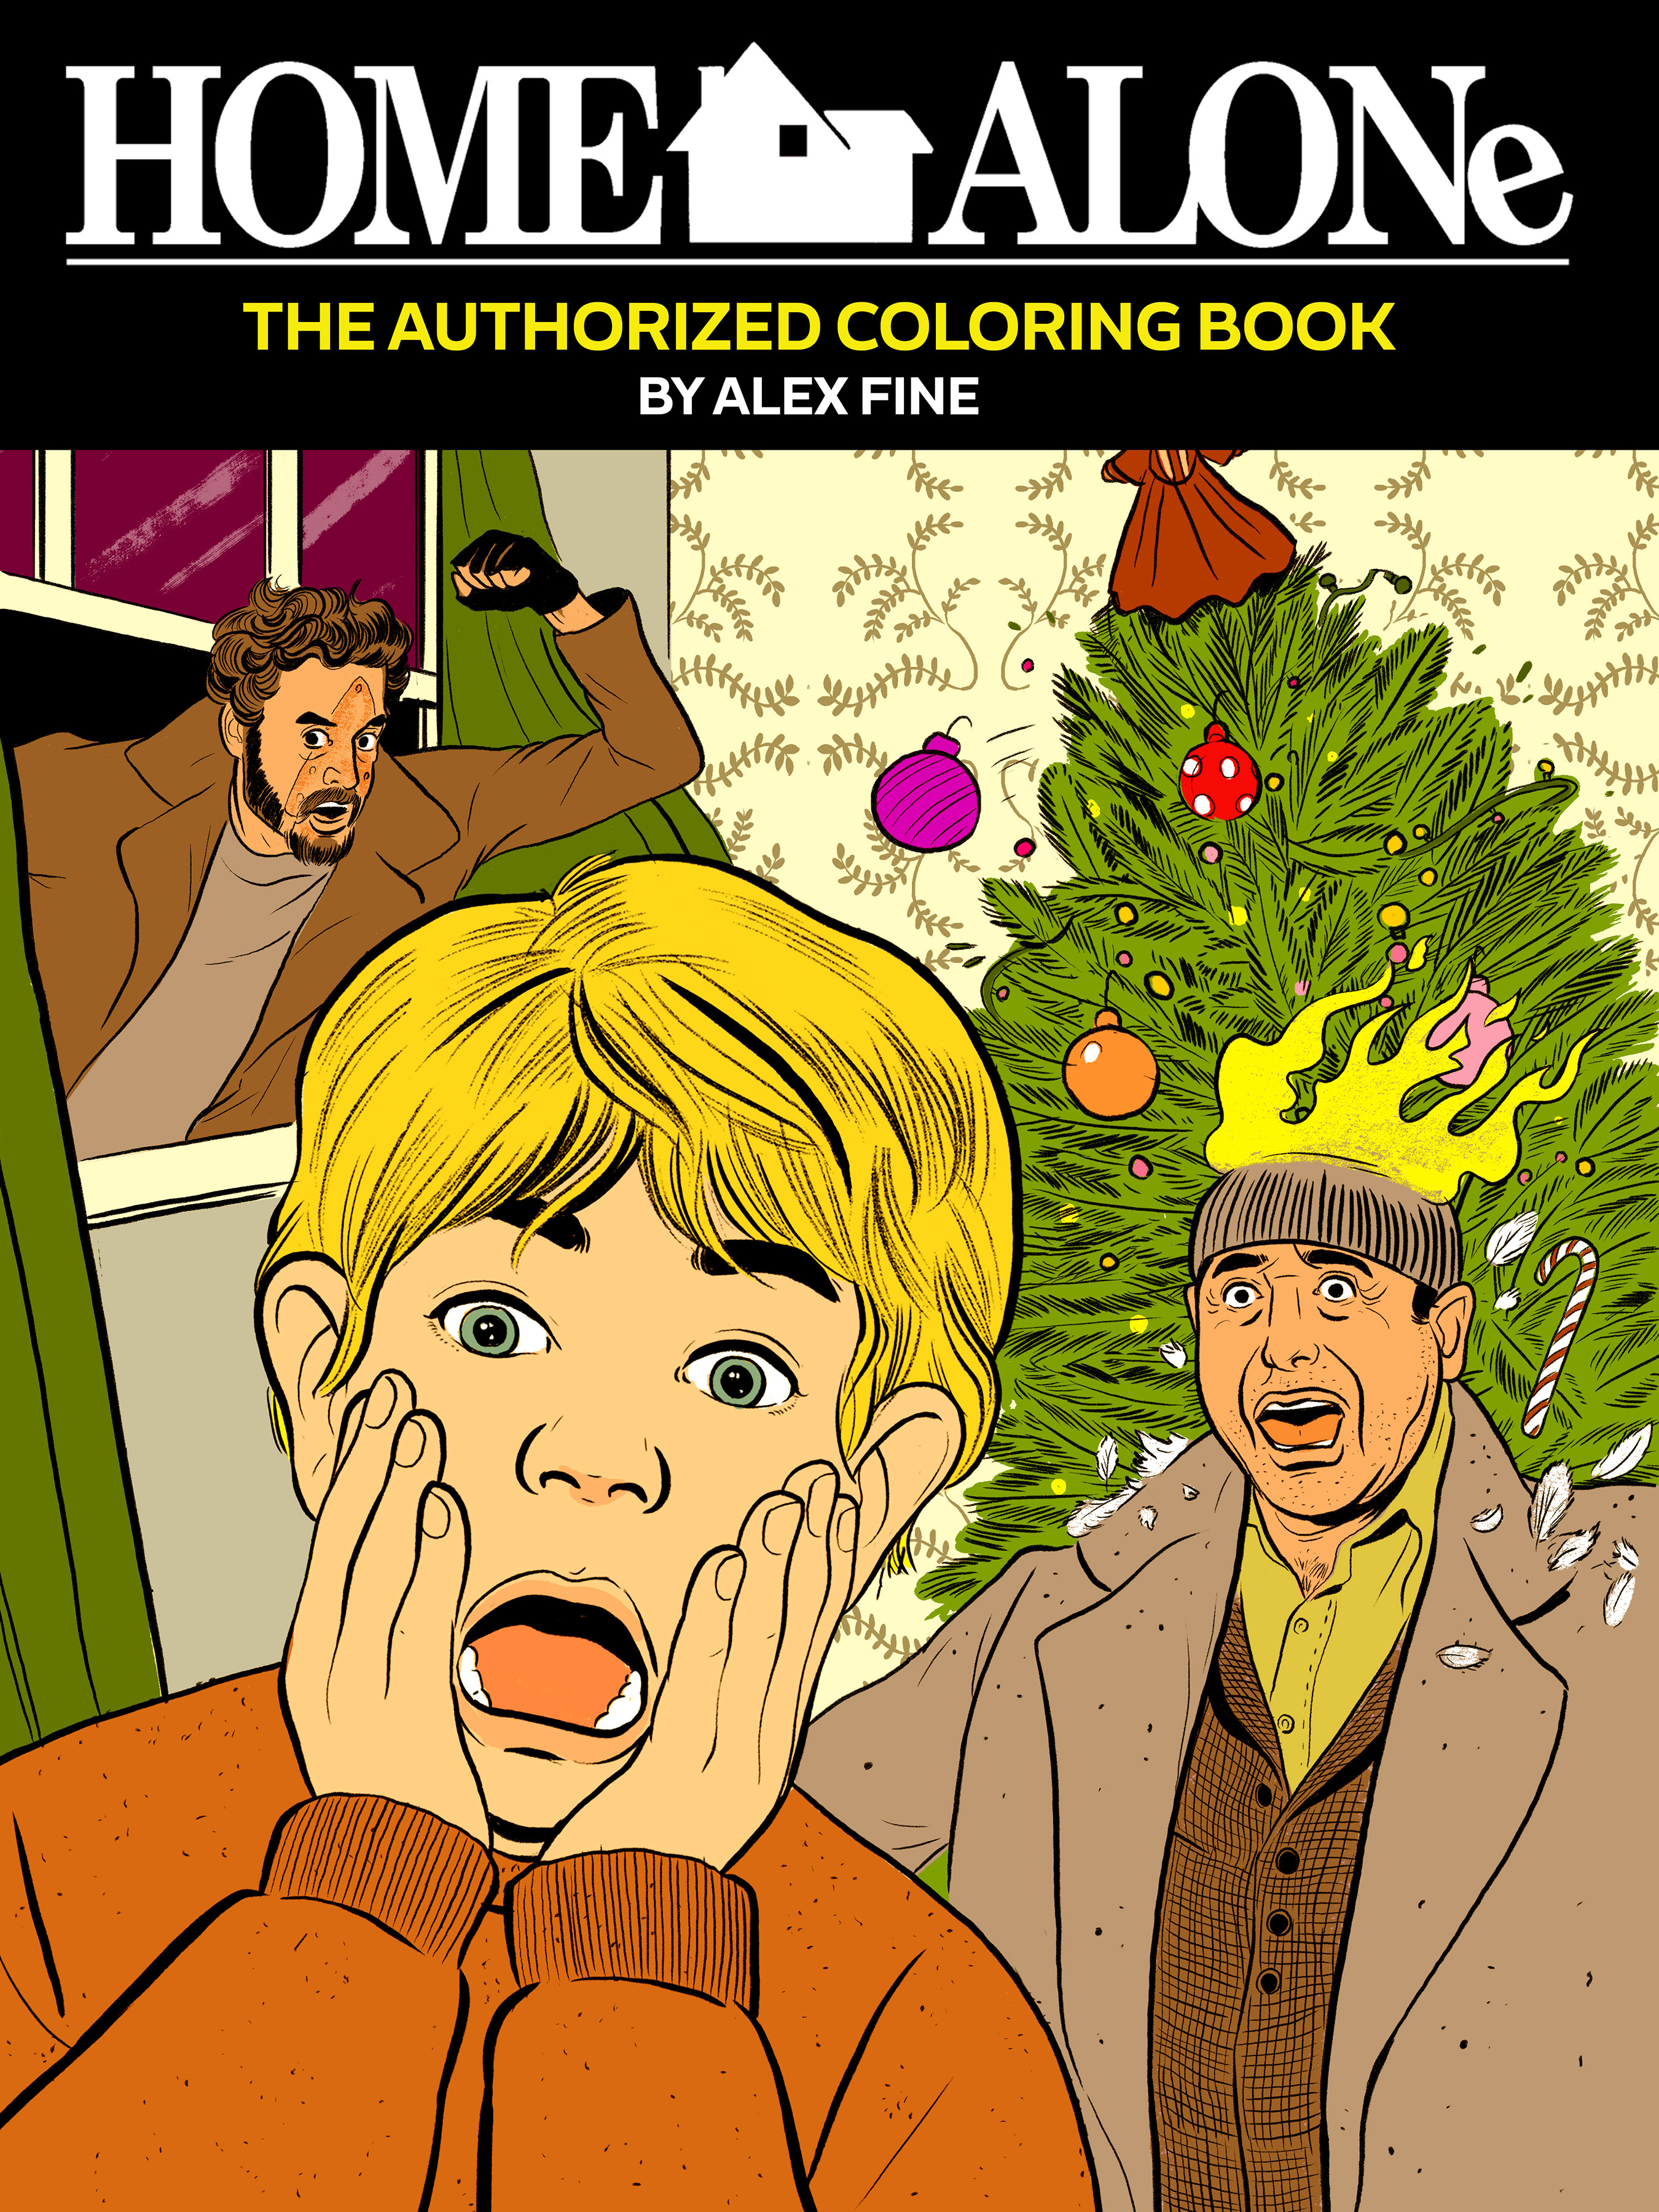 There S An Official Quot Home Alone Quot Coloring Book Now And It